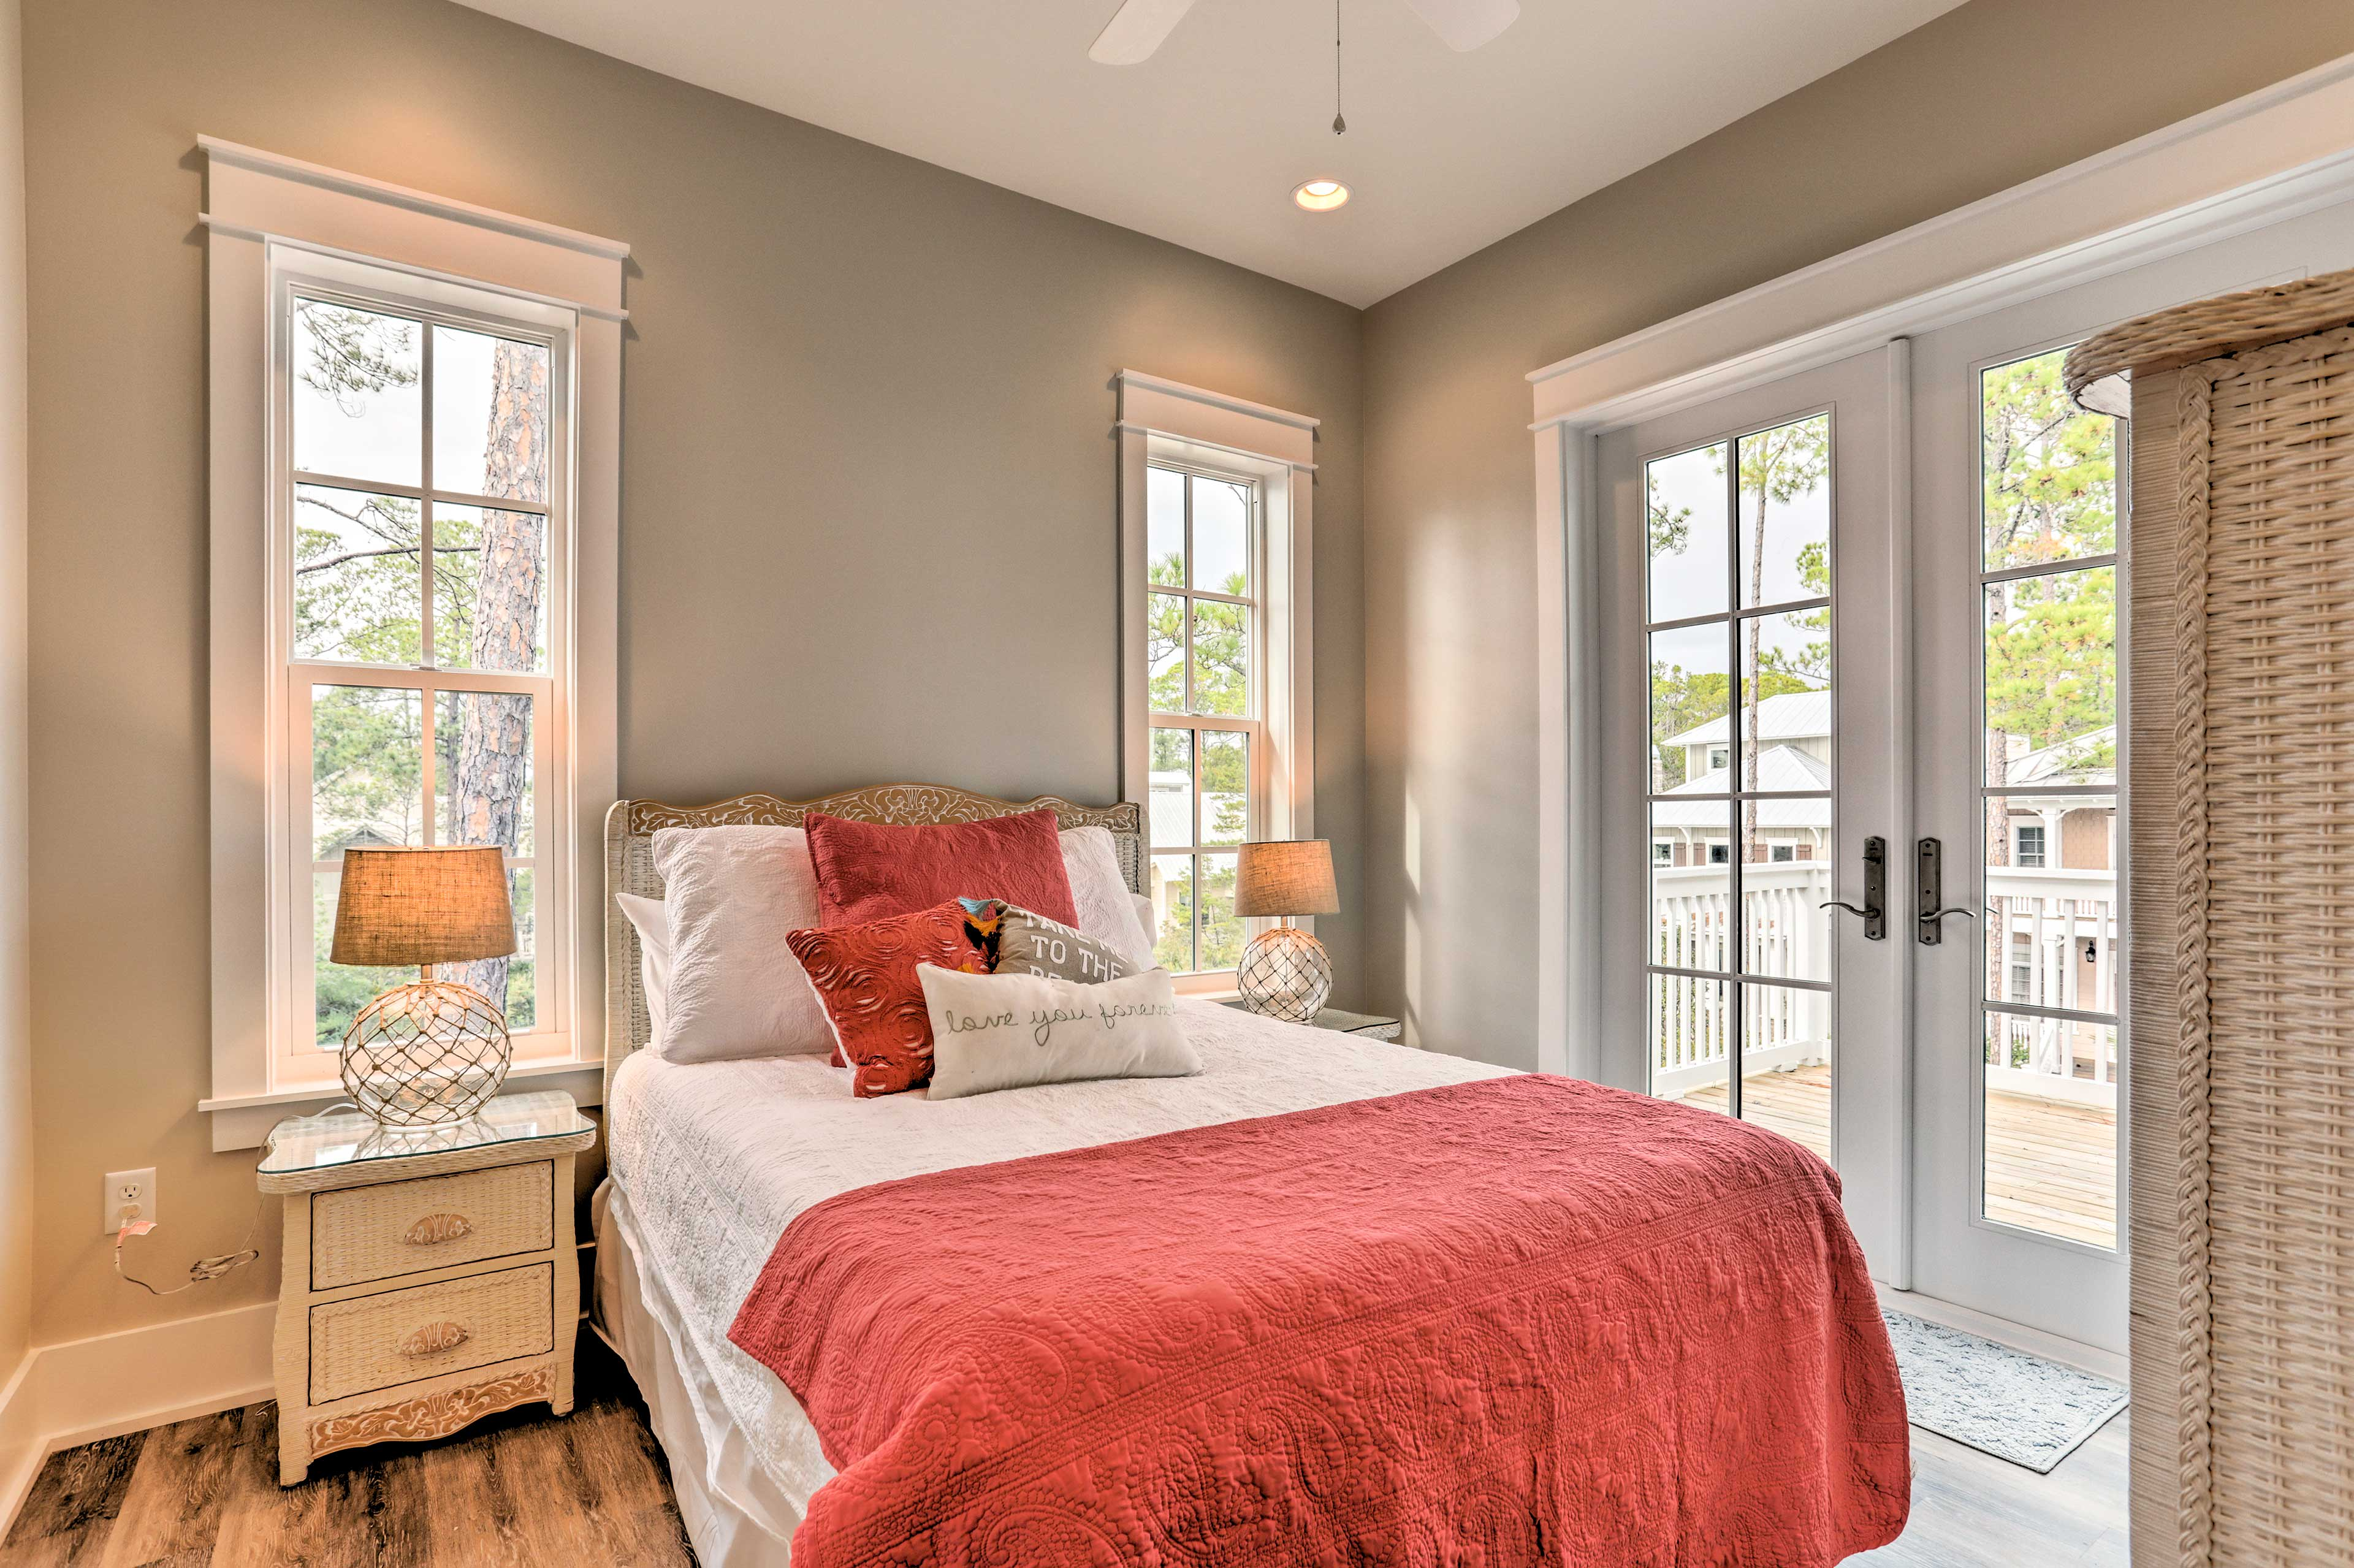 The second master bedroom features a queen bed.